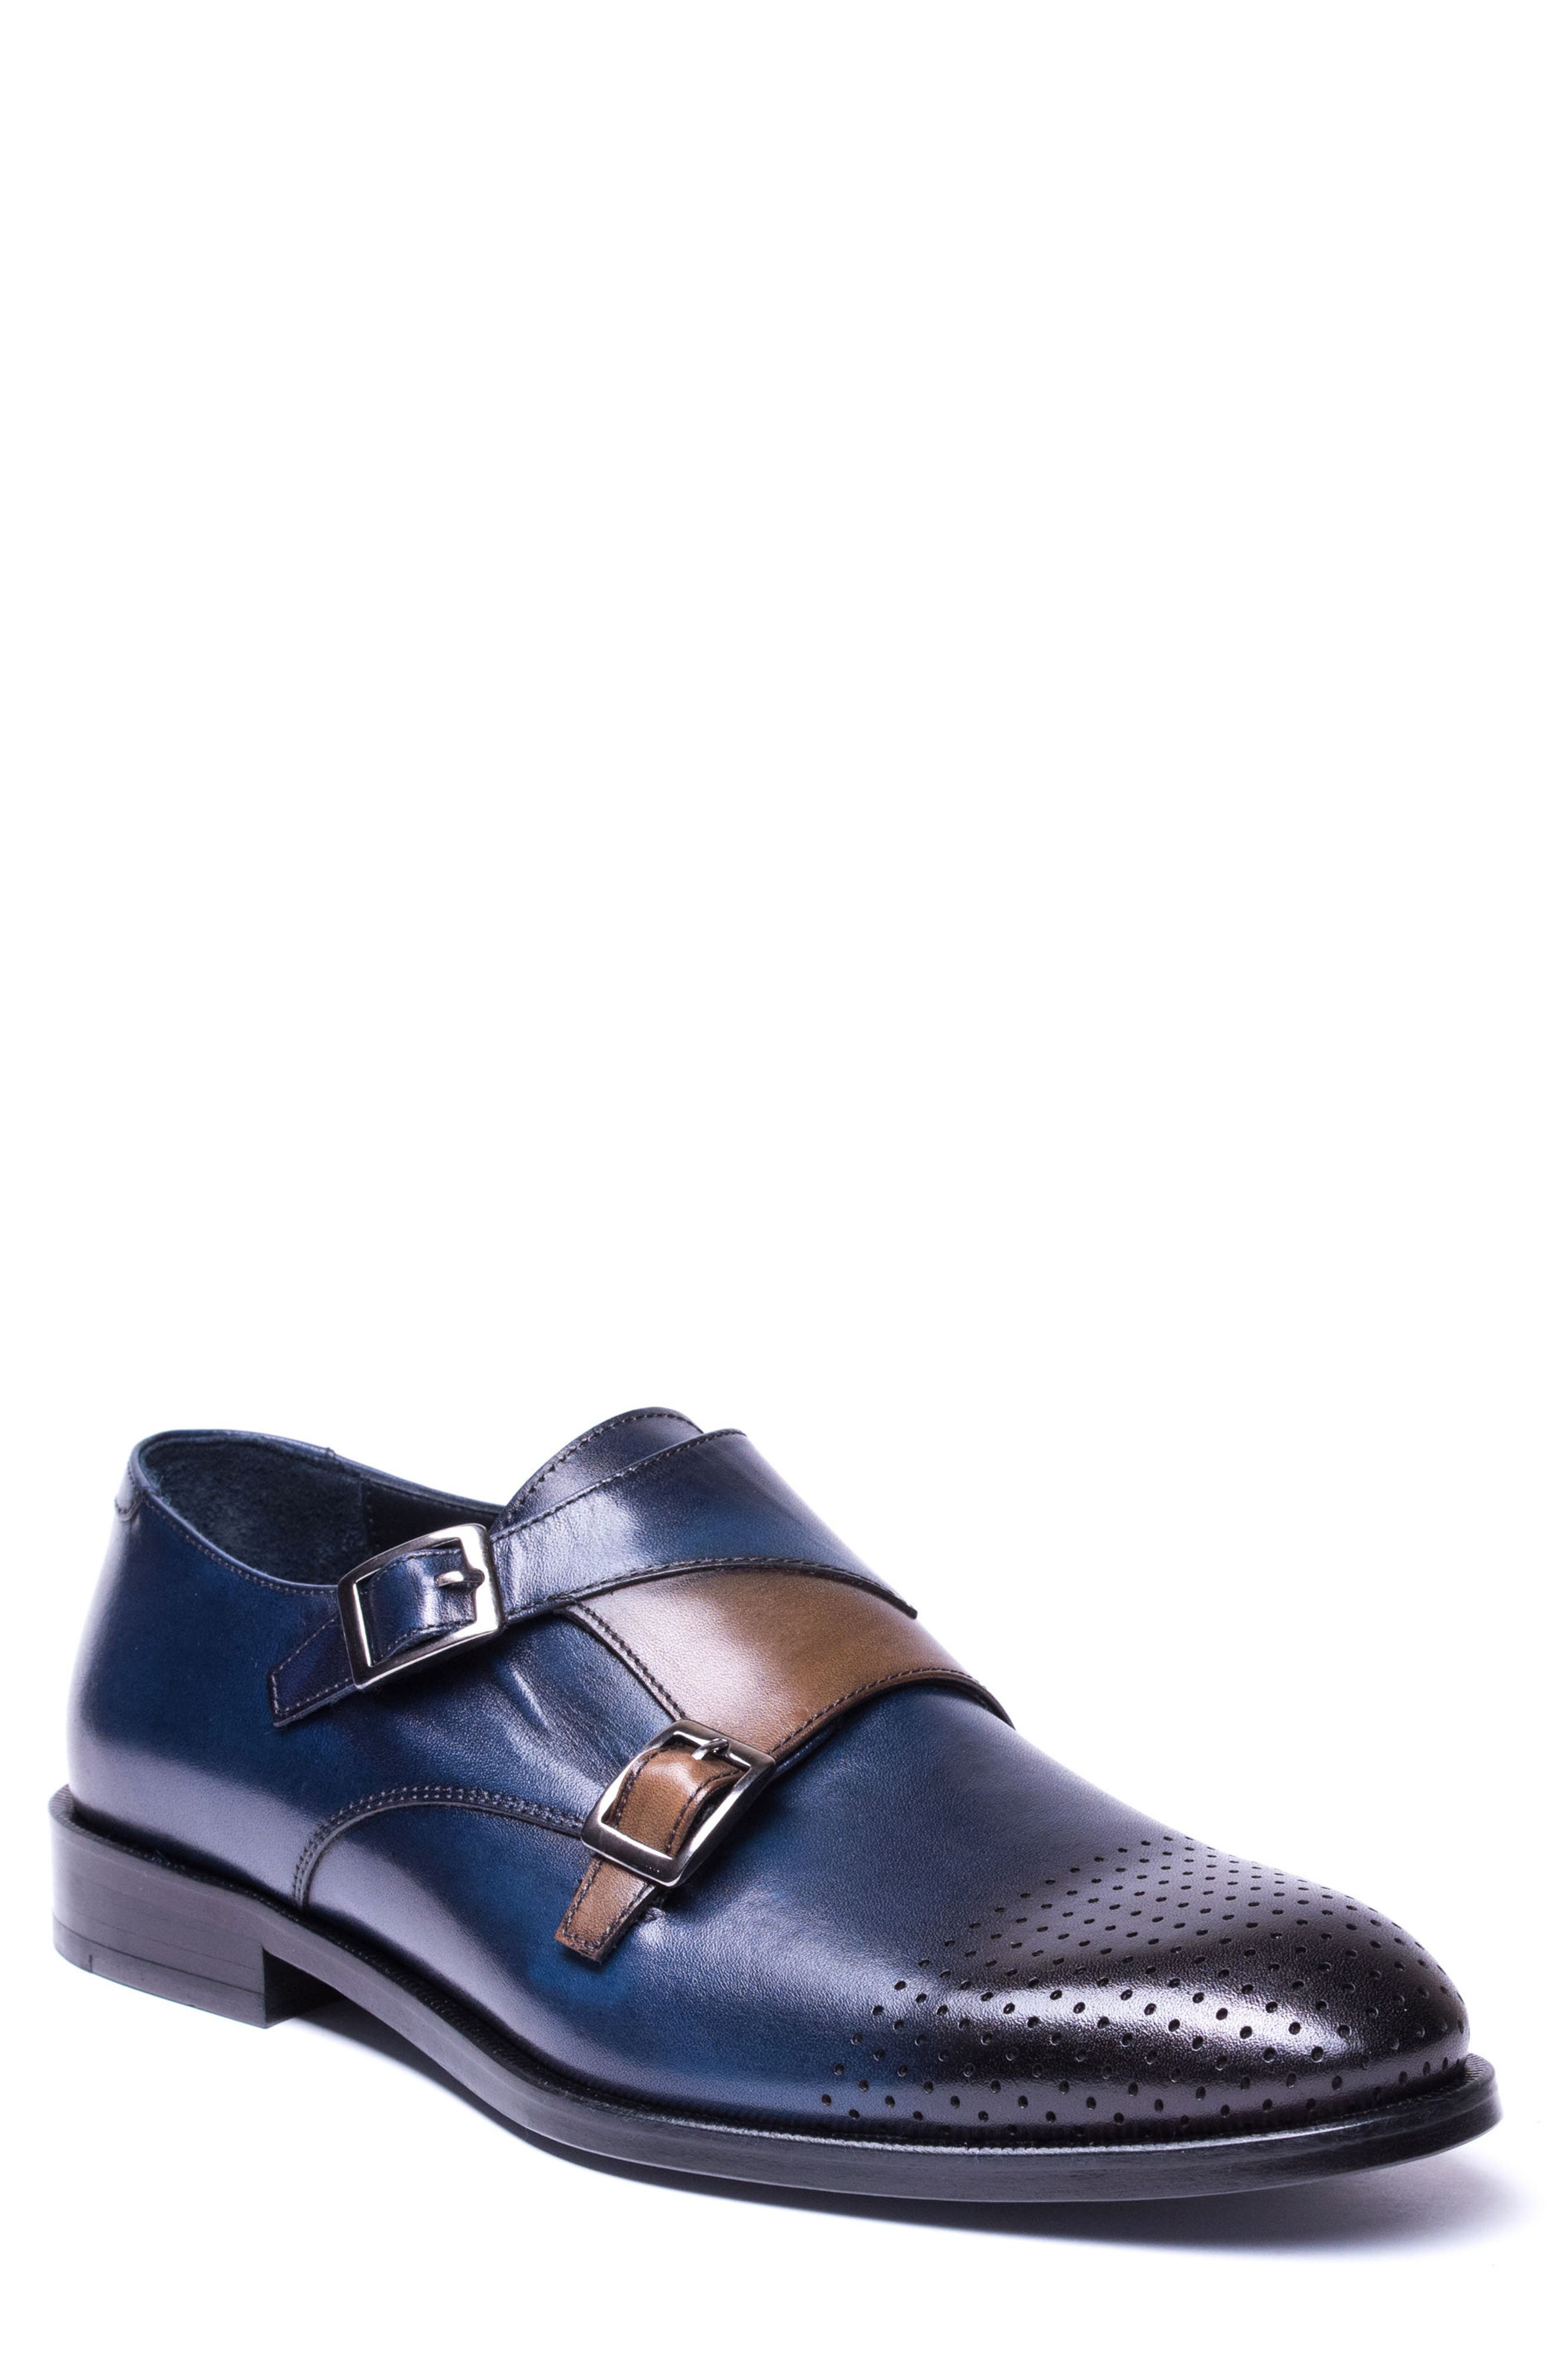 JARED LANG Men'S Leather Monk-Strap Dress Shoes in Navy